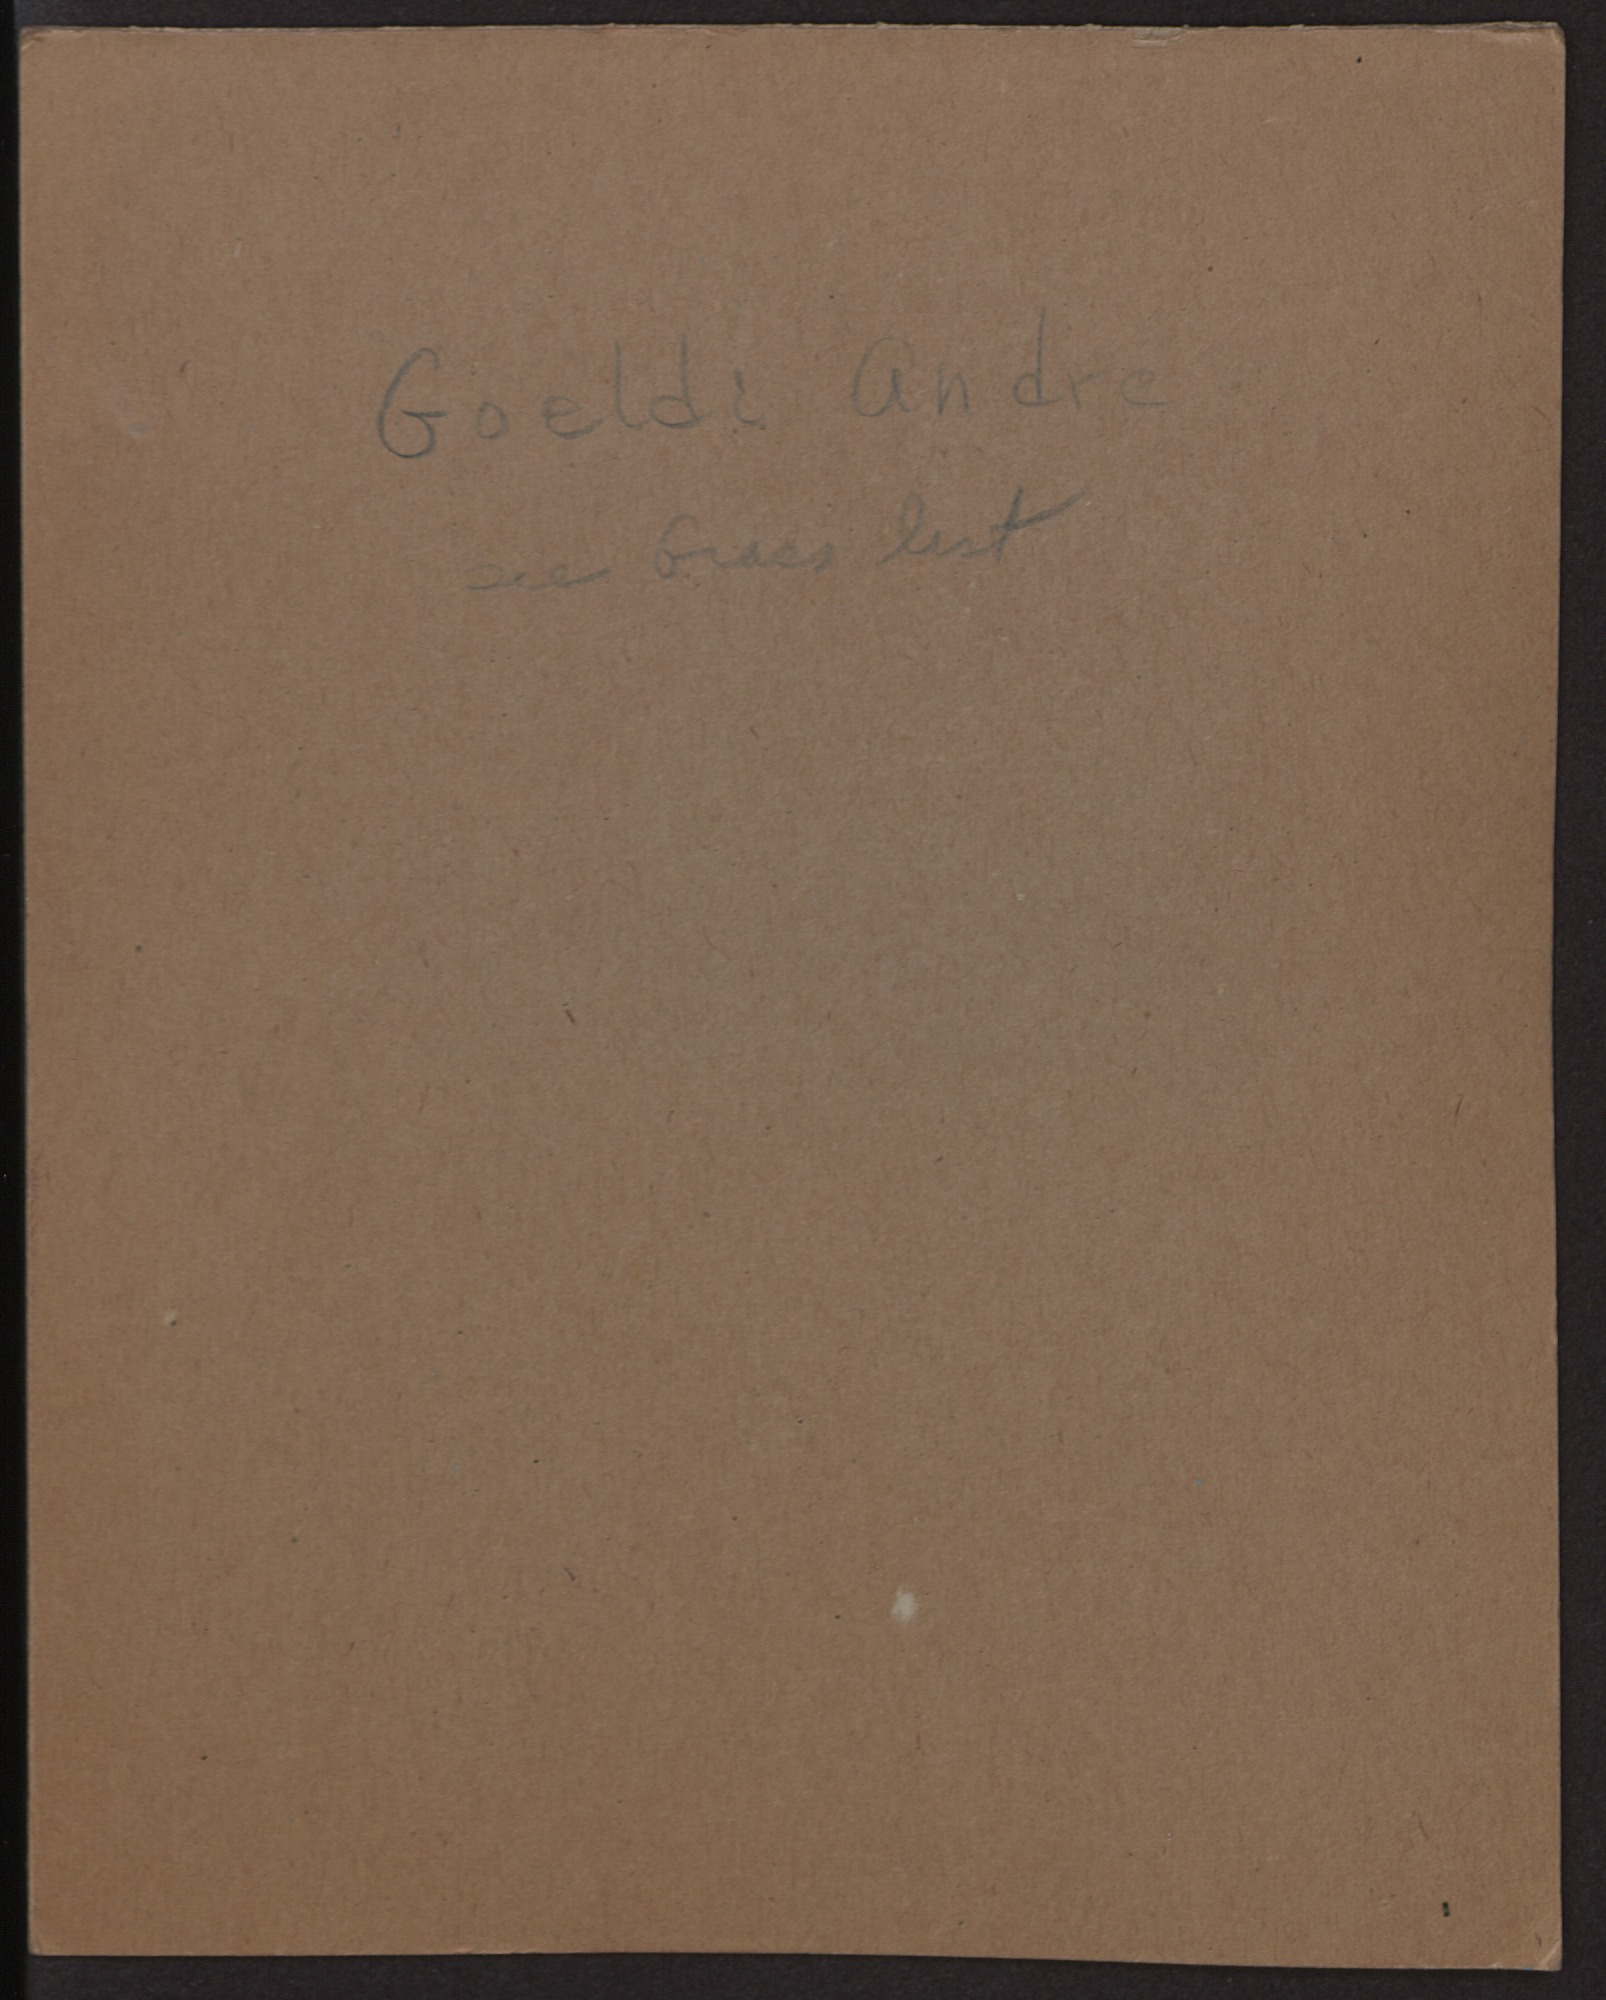 André Goeldi Field Notes, 1913-1920, 1966